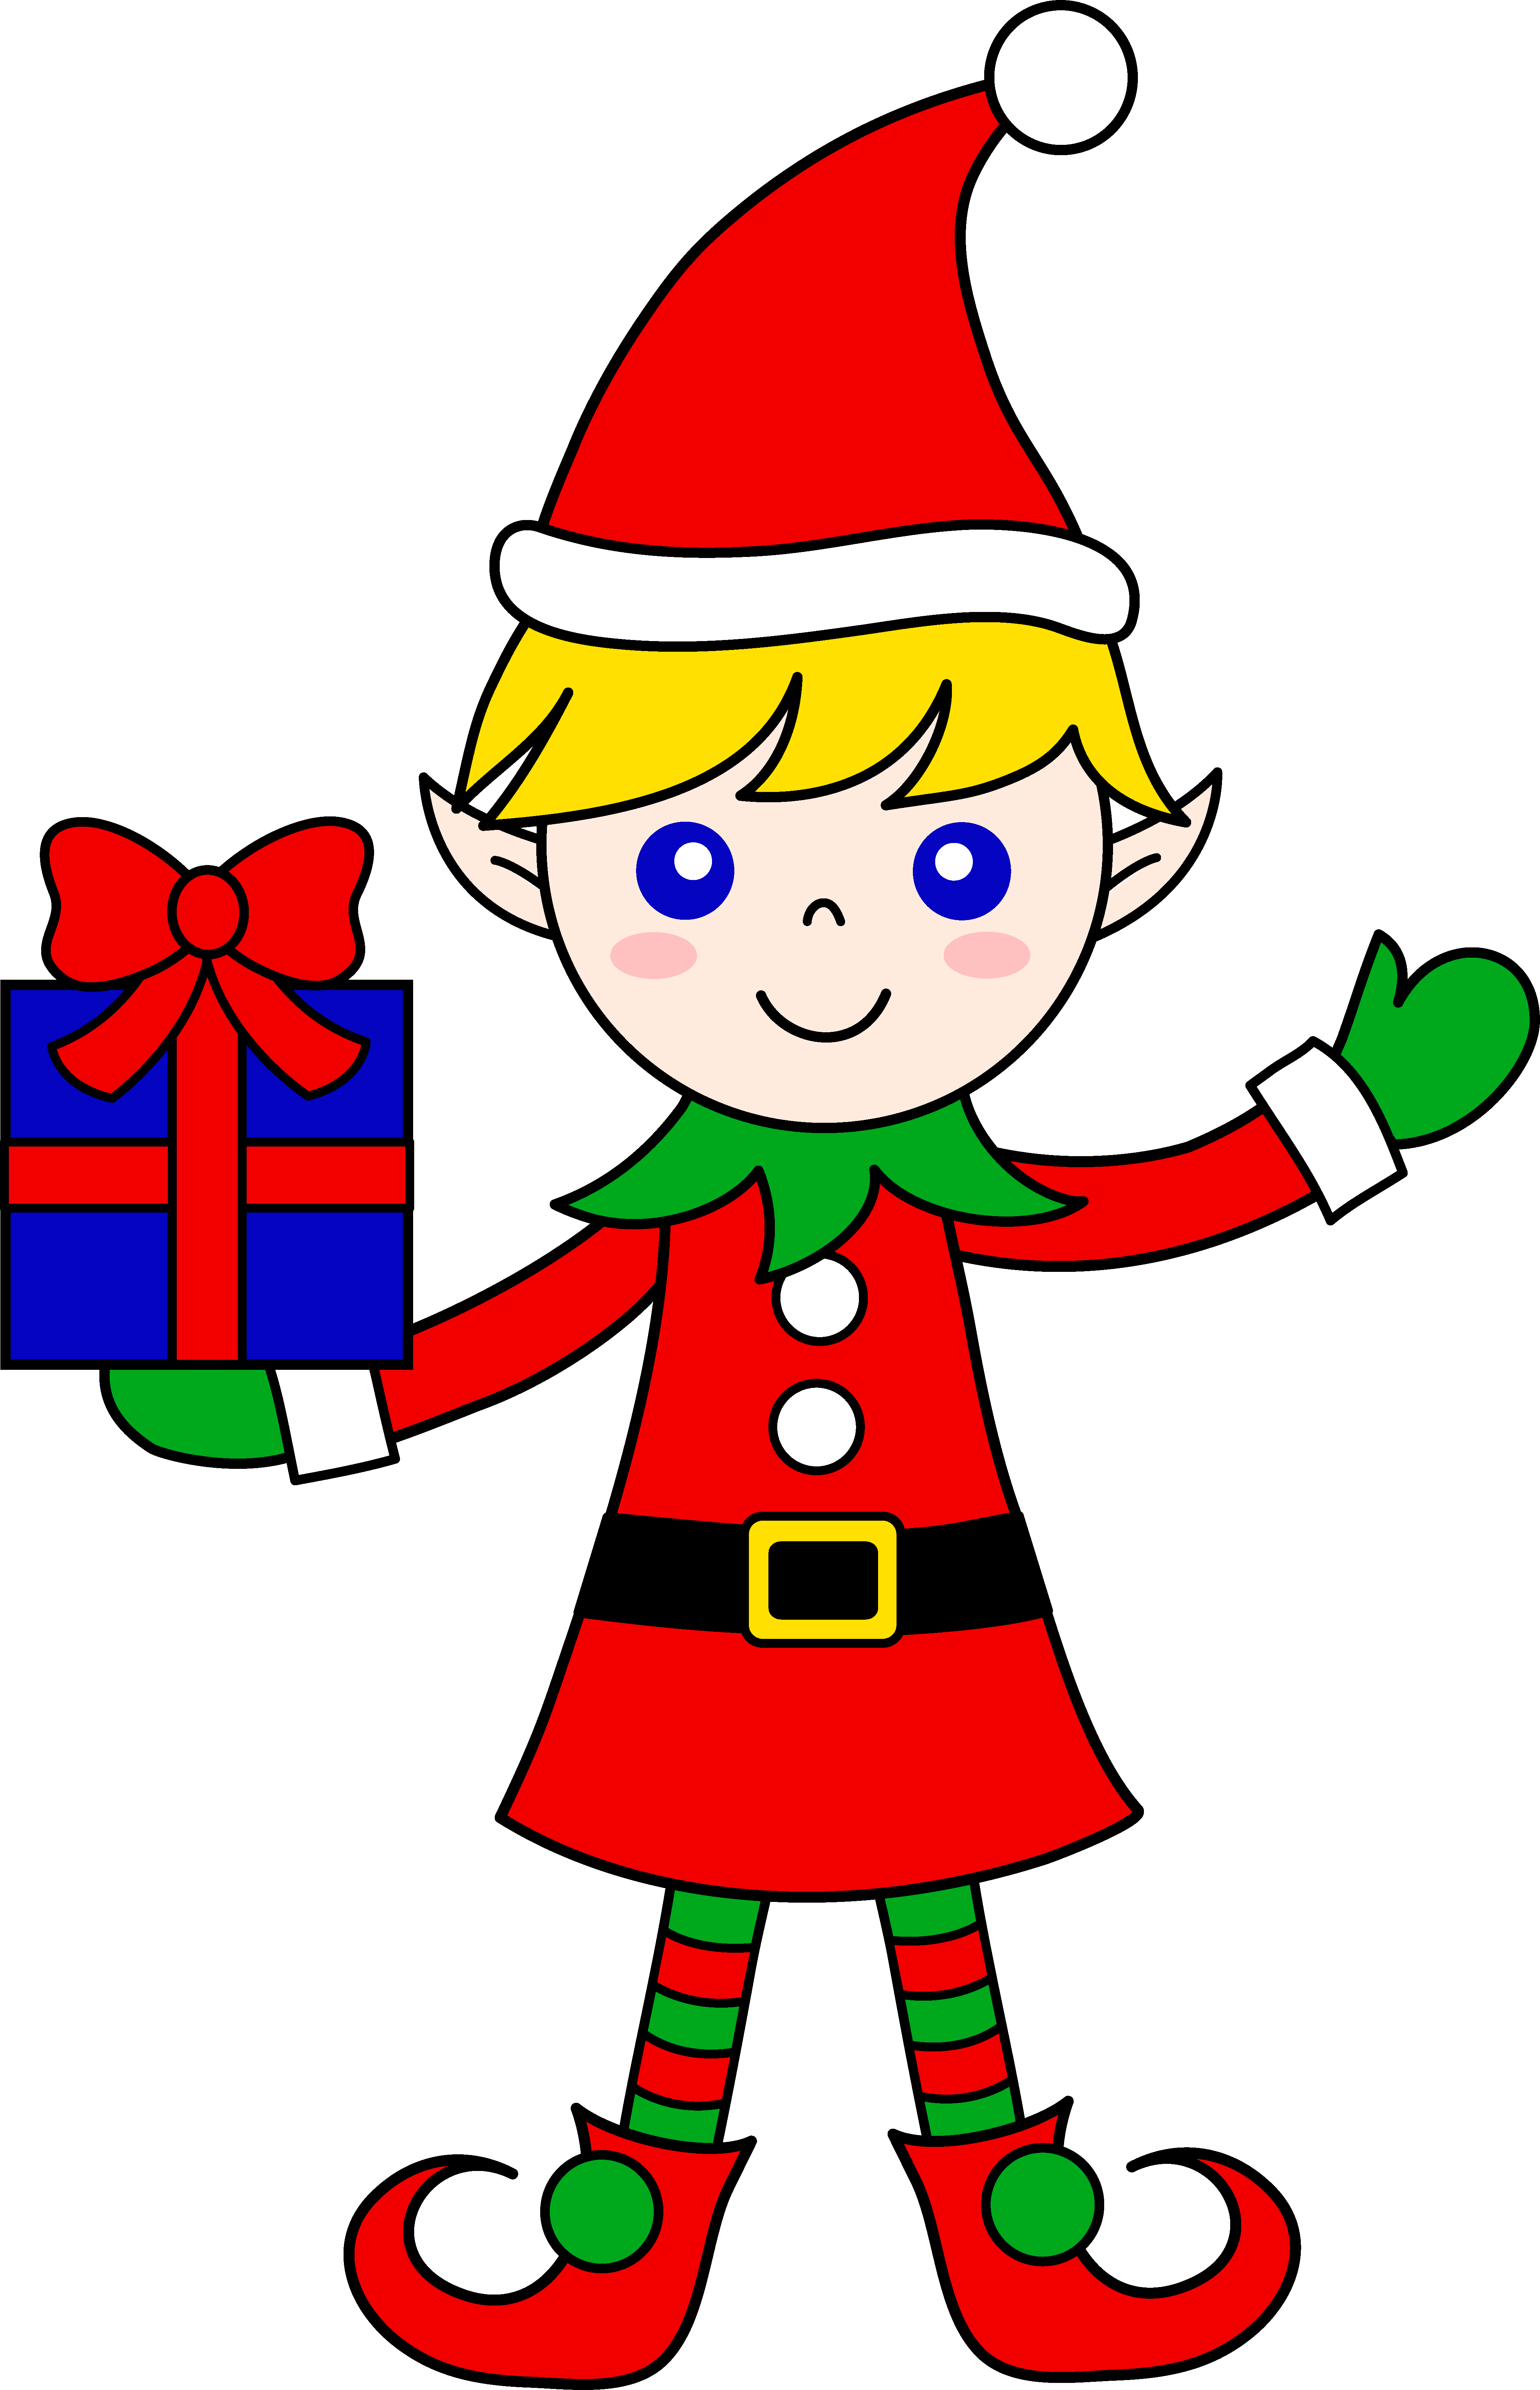 Christmas cartoon clipart svg free Elf Cartoon Cliparts Free collection | Download and share Elf ... svg free